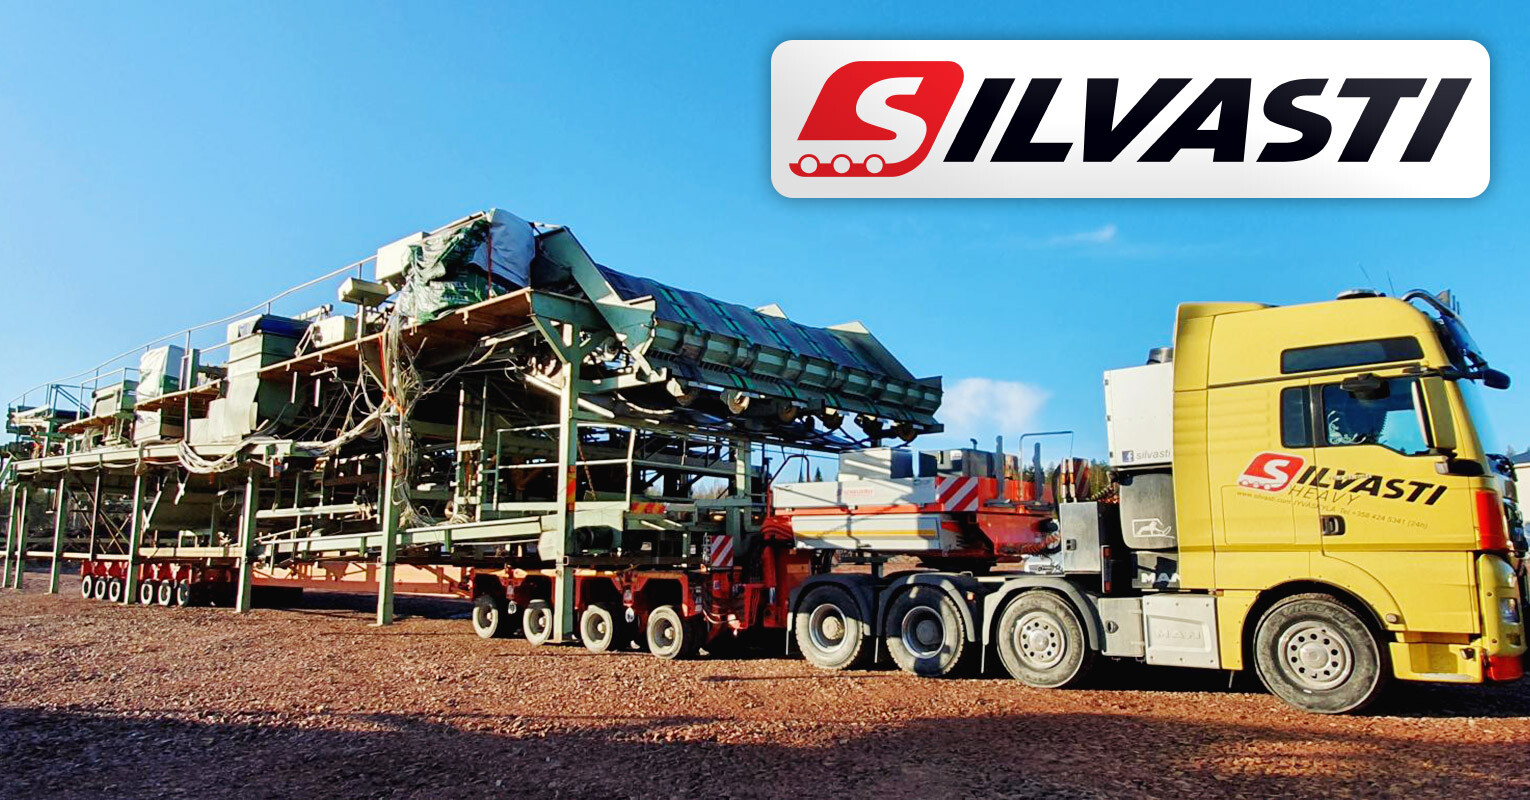 Silvasti Successfully Moved Conveyors 30m x ~9m x 5m Weighing 50-100 tons